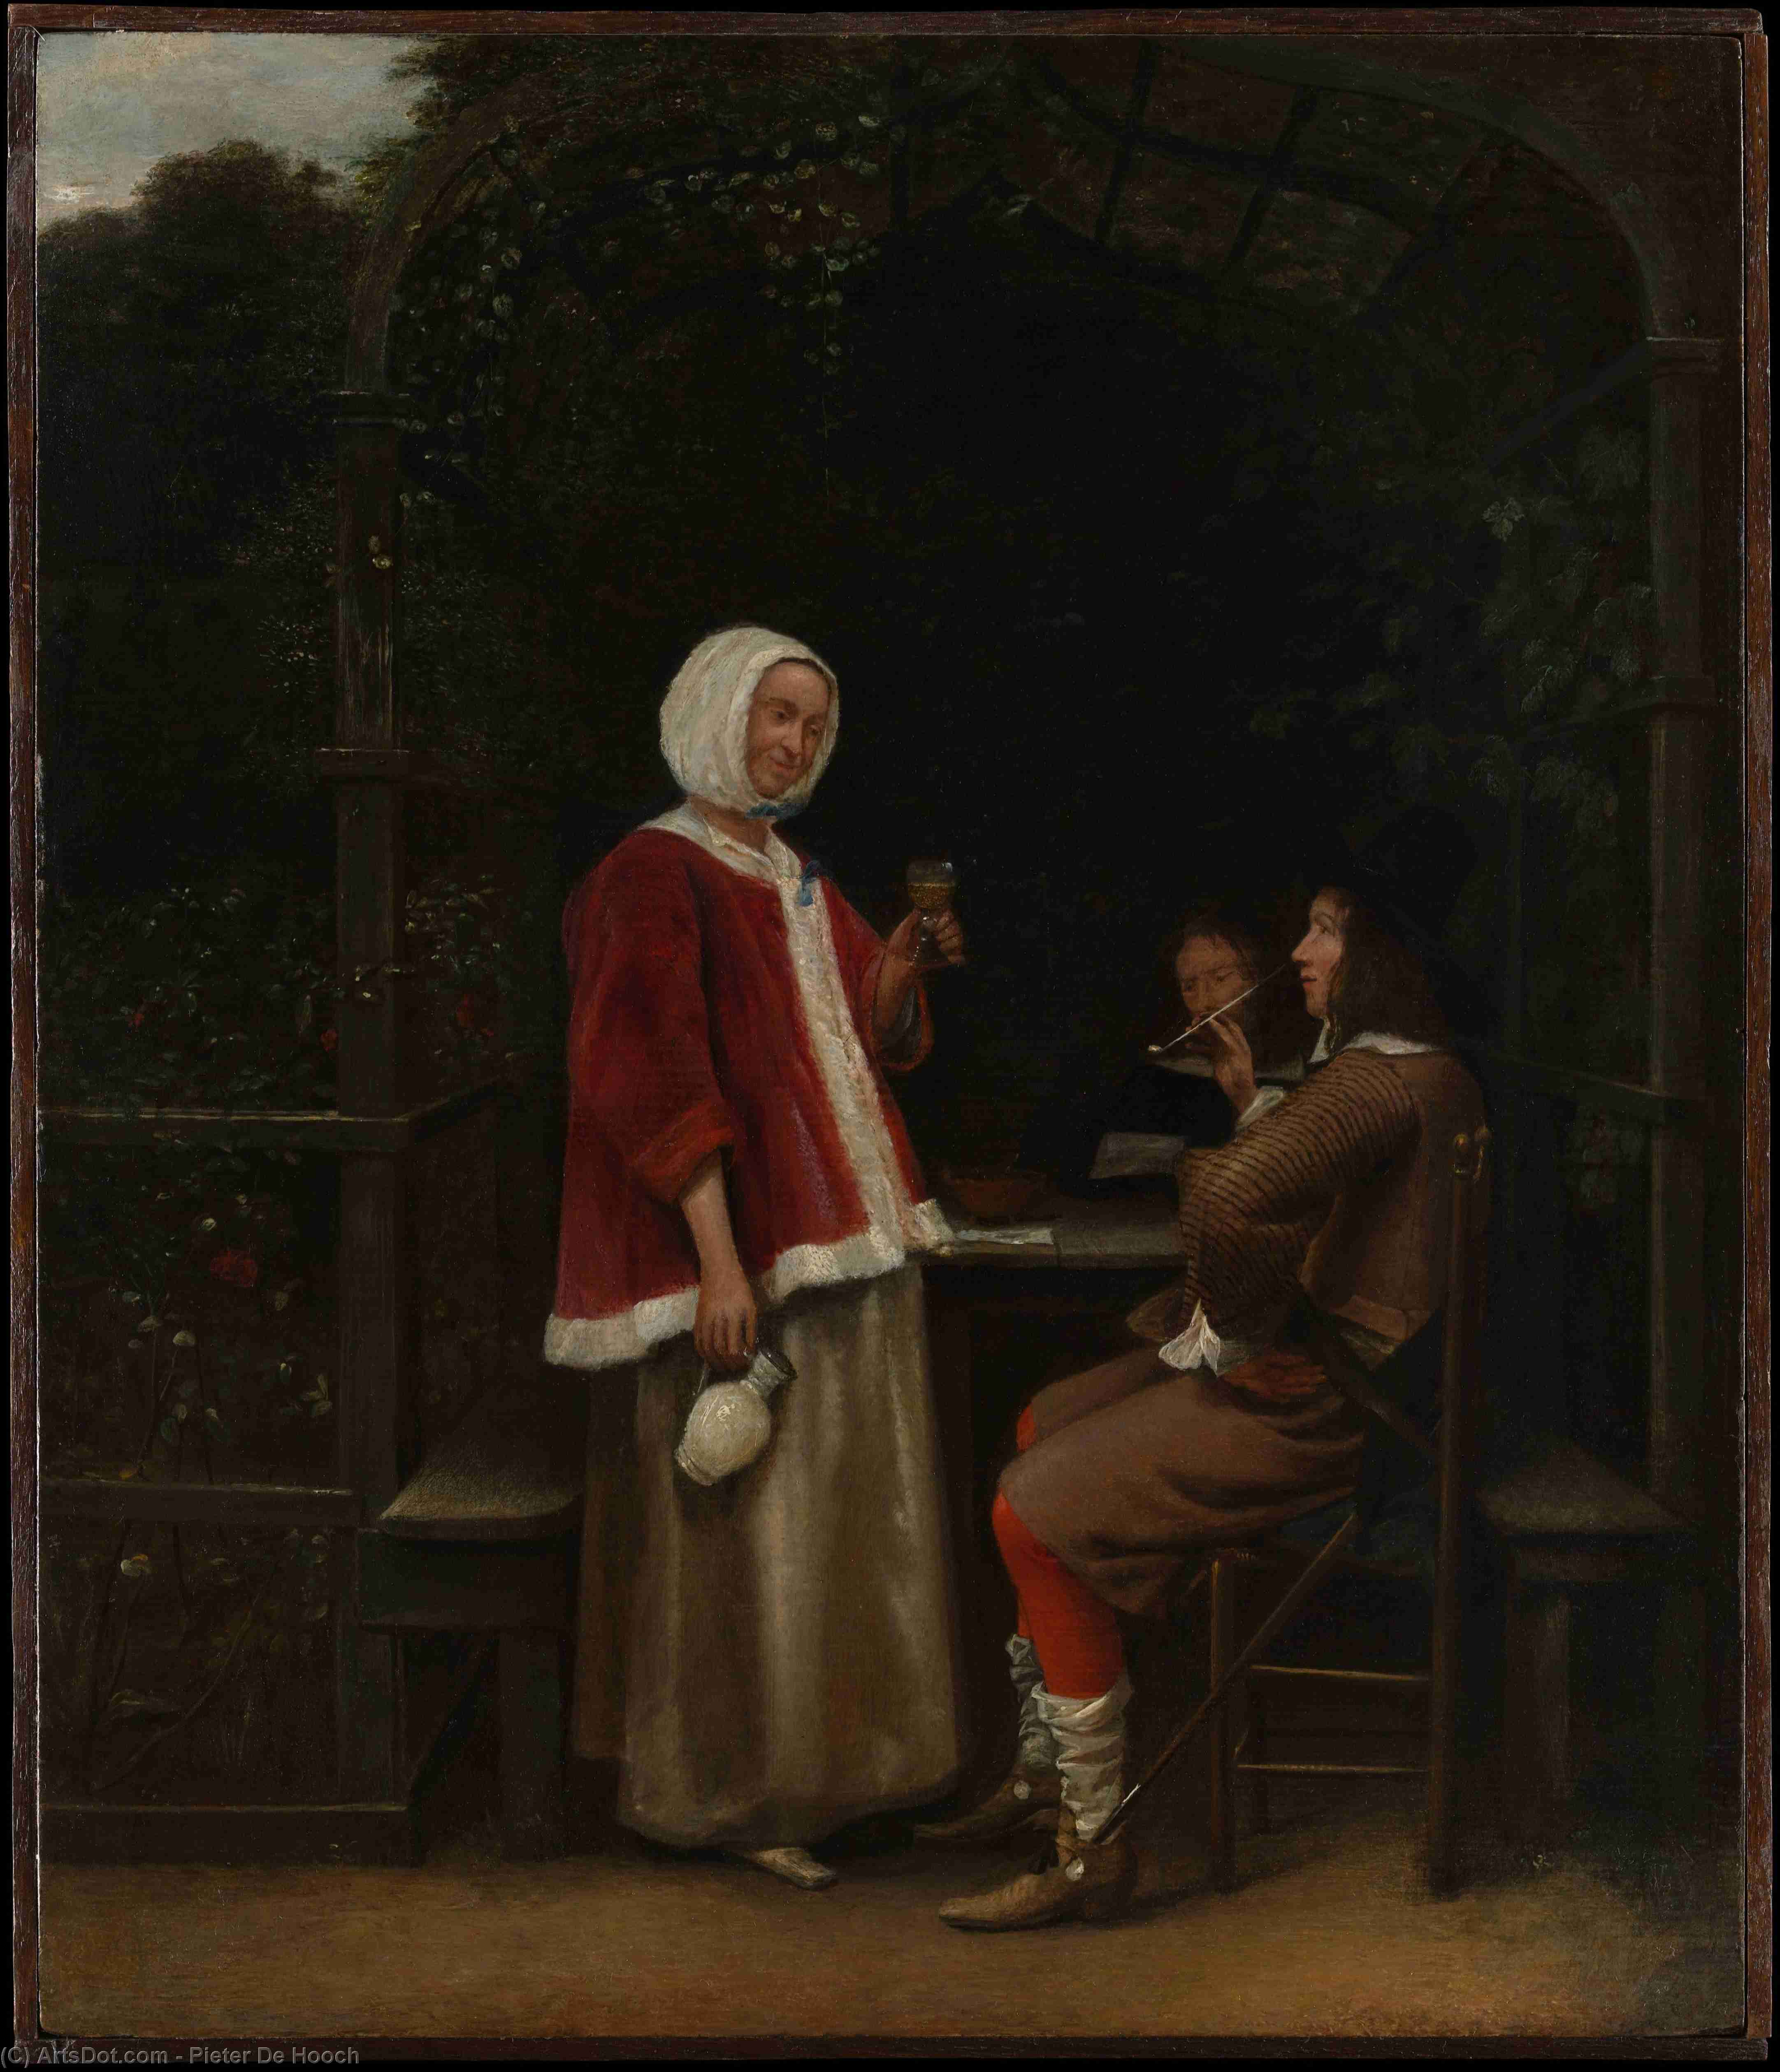 Wikioo.org - The Encyclopedia of Fine Arts - Painting, Artwork by Pieter De Hooch - A Woman and Two Men in an Arbor